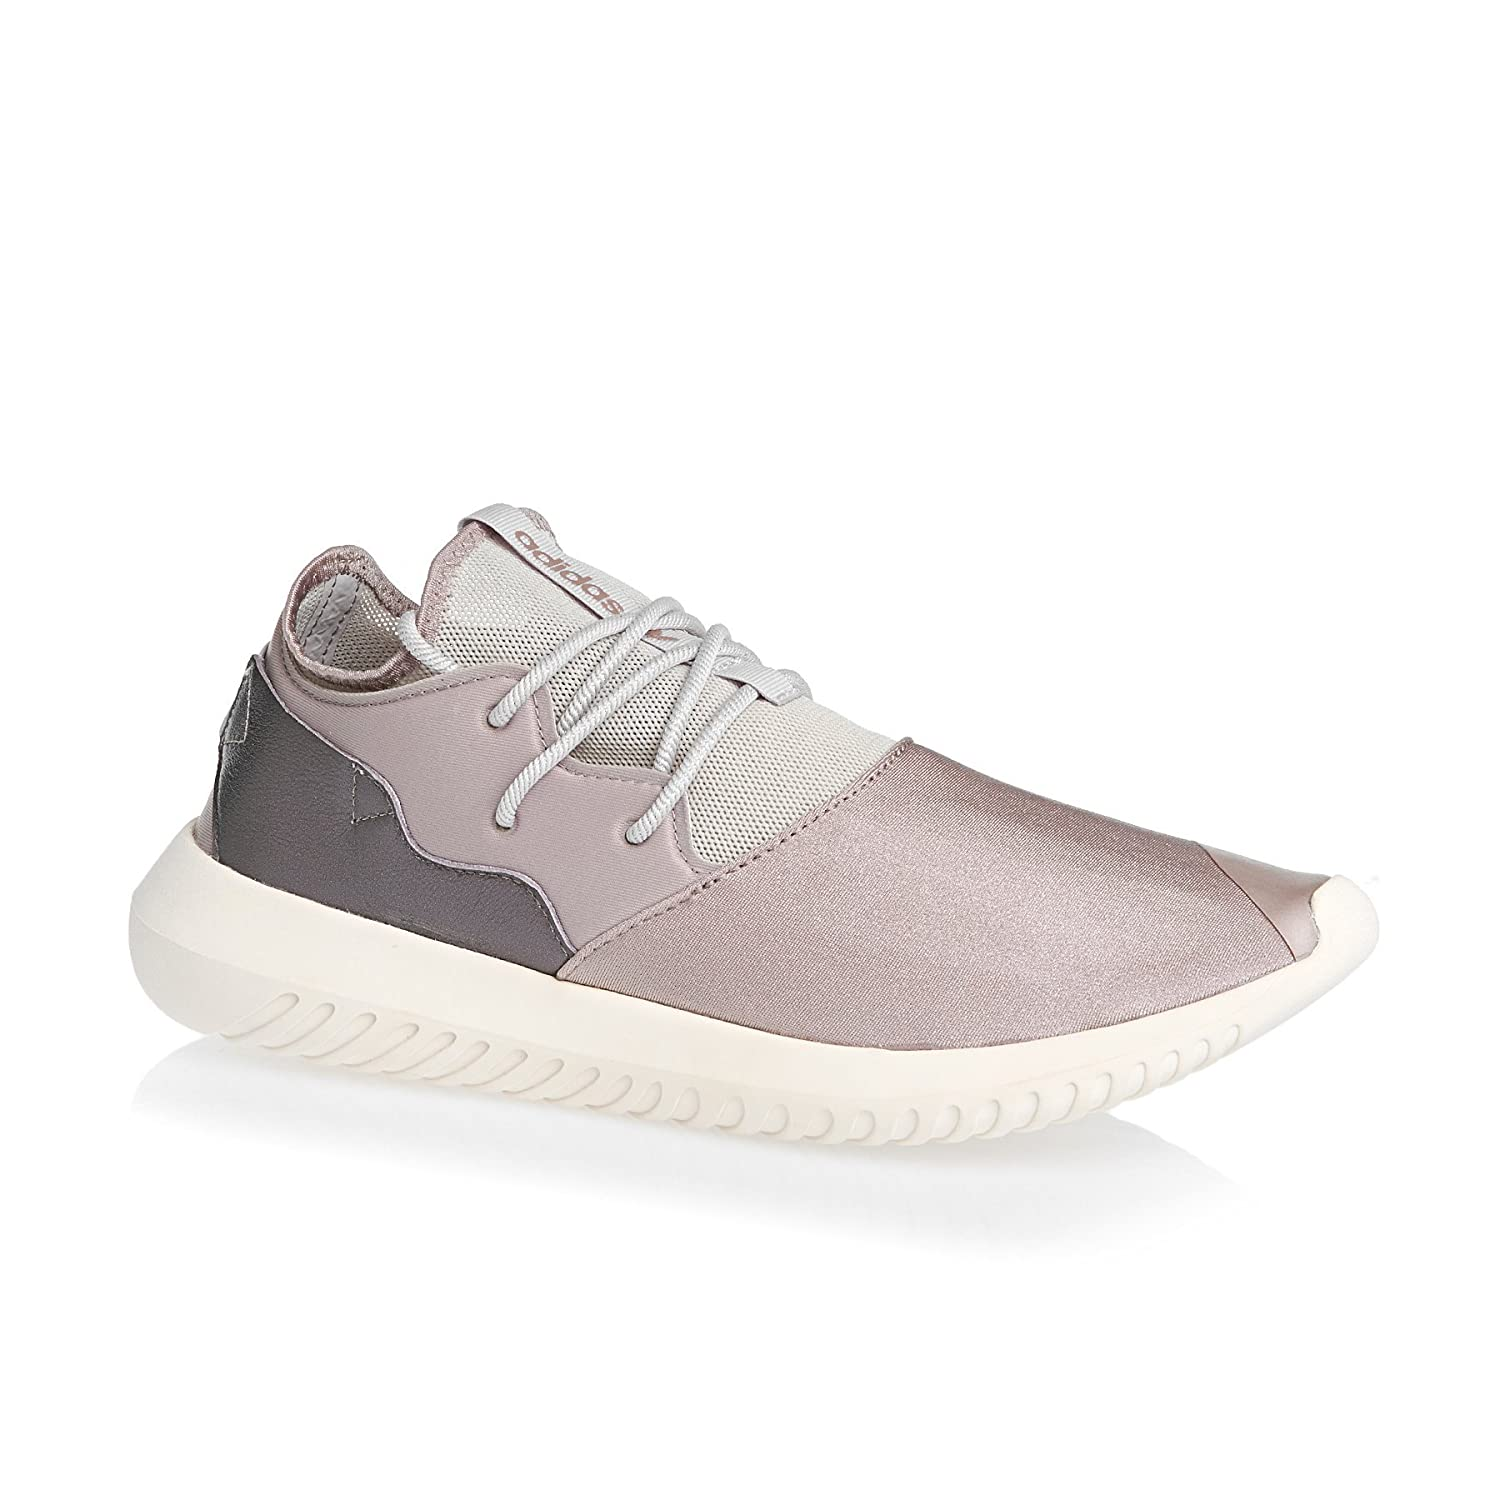 adidas Tubular Entrap Trainers Grey: Amazon.